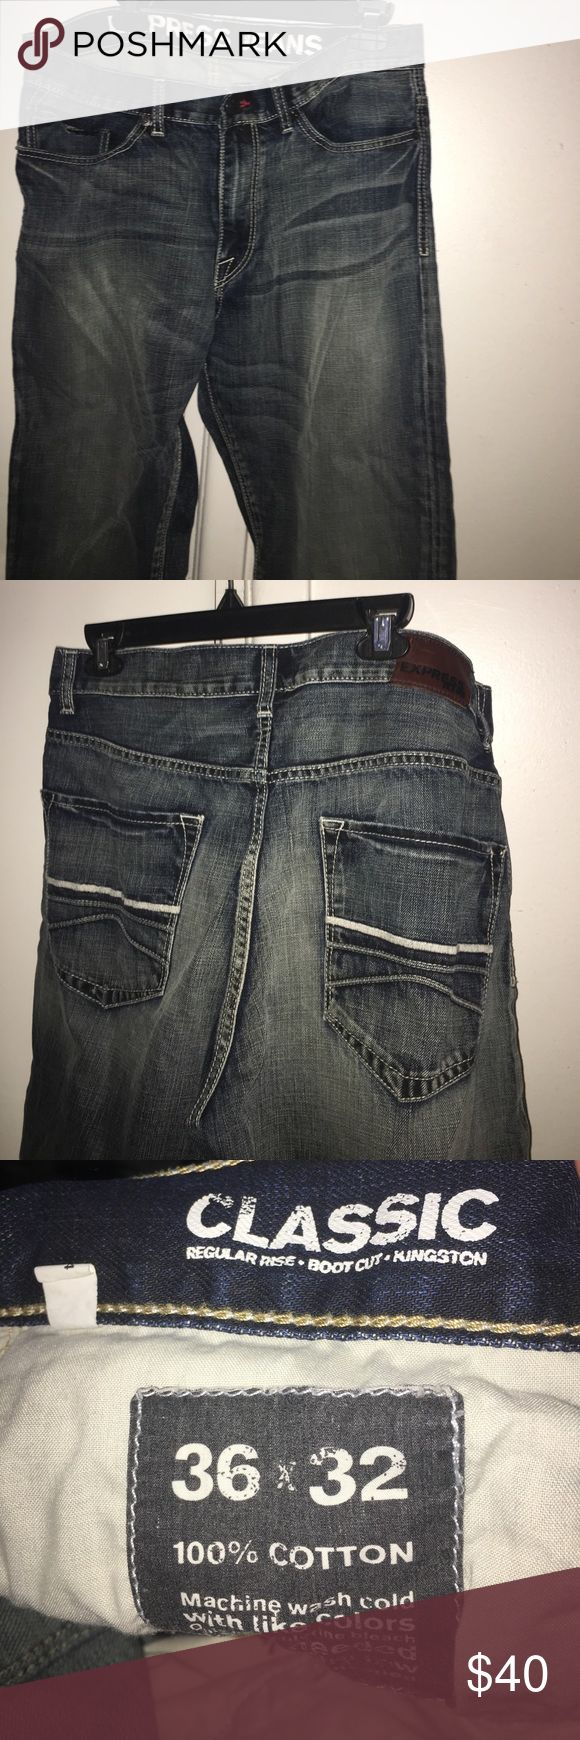 Express Men's Jeans Regular Rise / Bootcut Fit /Medium Wash Jeans . Worn one time . Kingston Express Jeans Express Jeans Bootcut